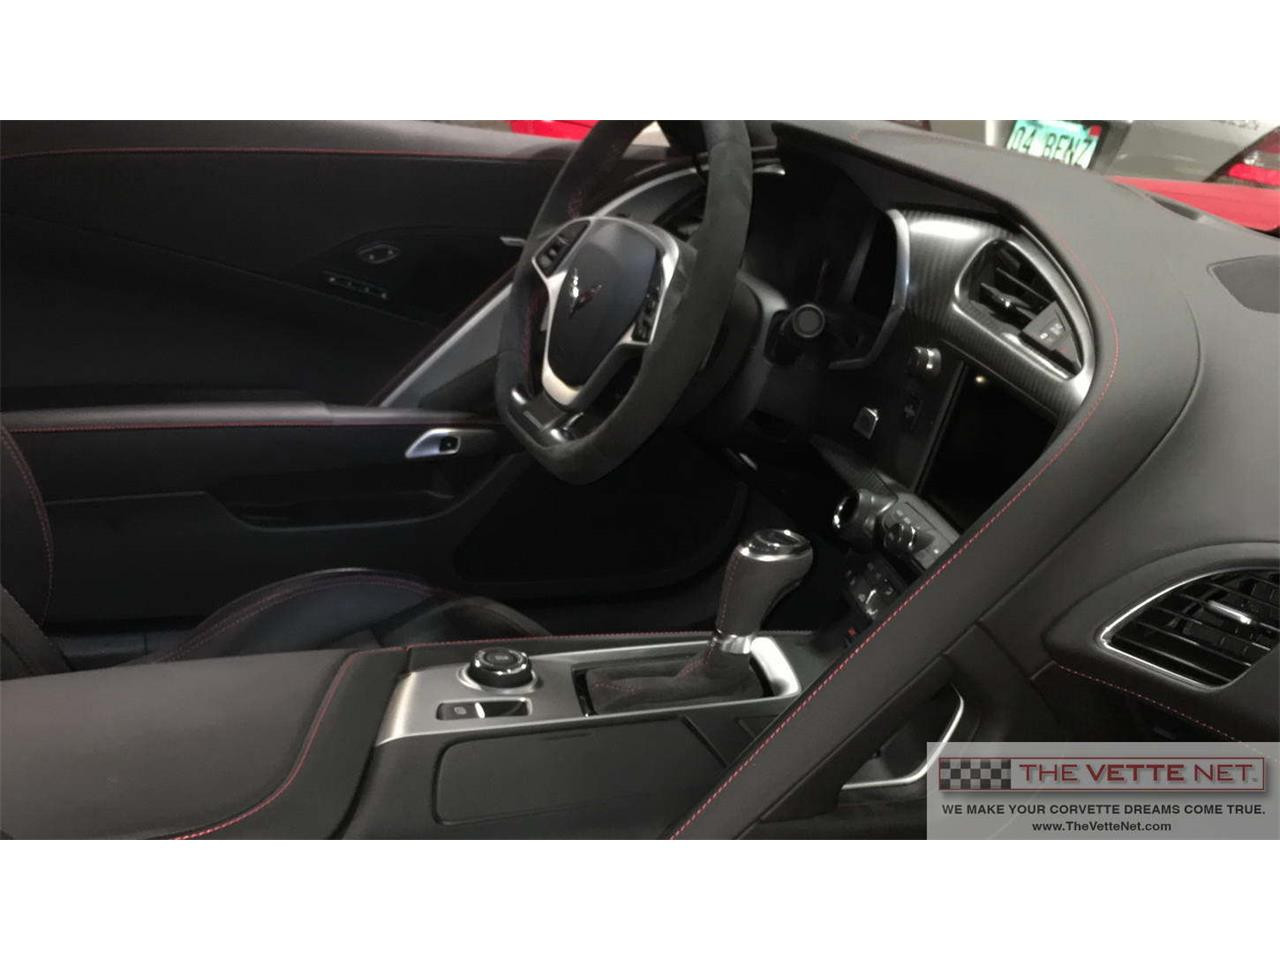 2016 Chevrolet Corvette (CC-933510) for sale in Sarasota, Florida